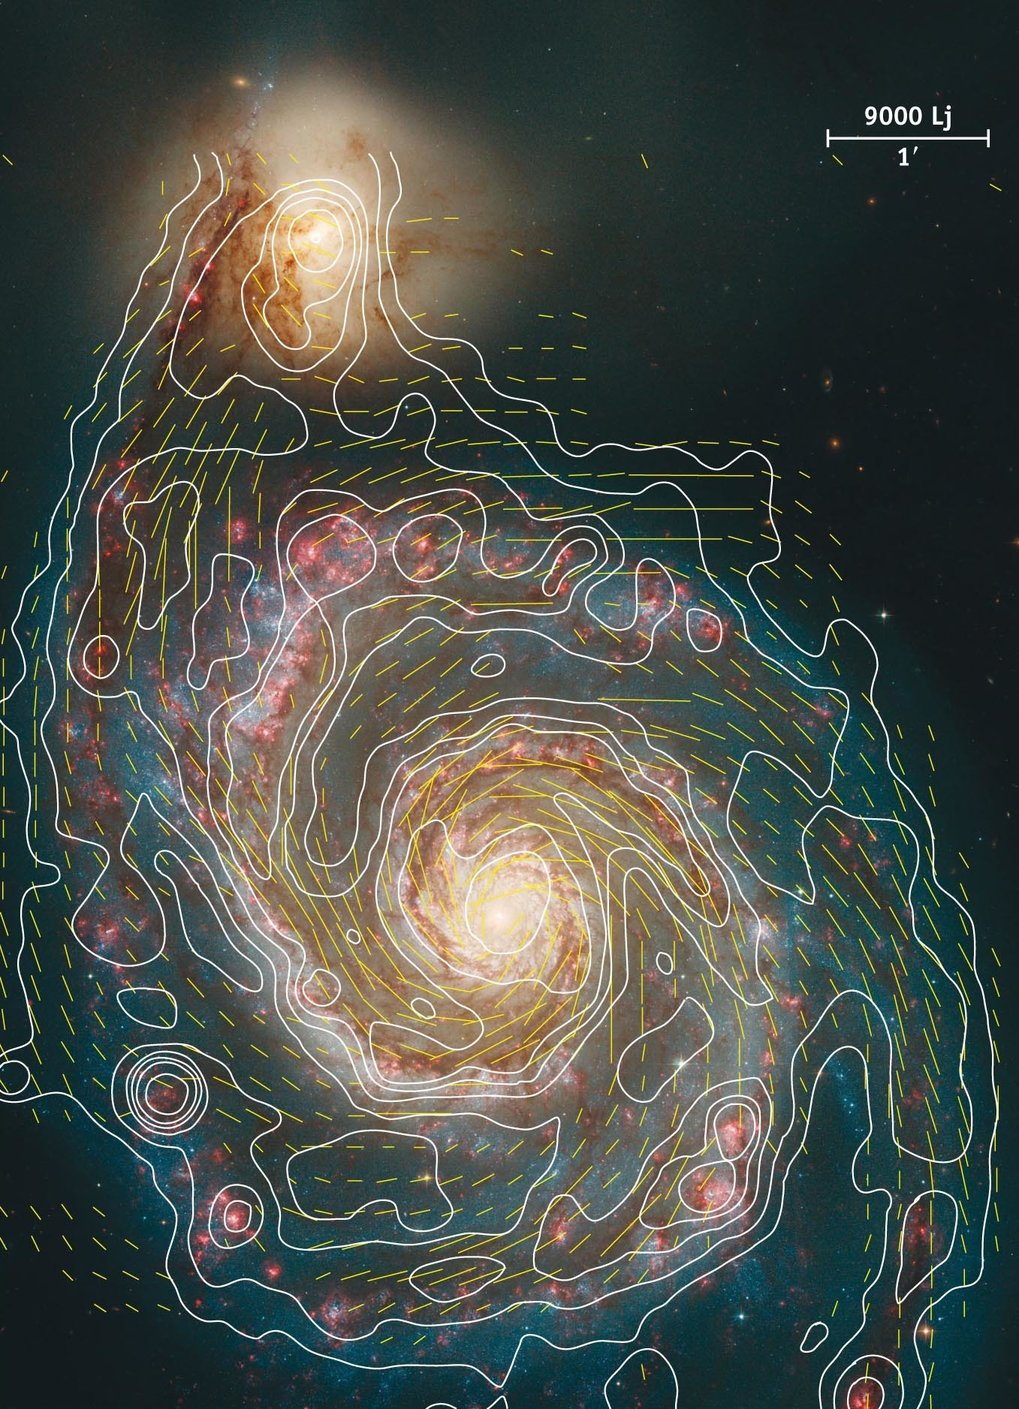 Magnetic field lines in M51 and contours of total emission at 6 cm (VLA+Effelsberg)